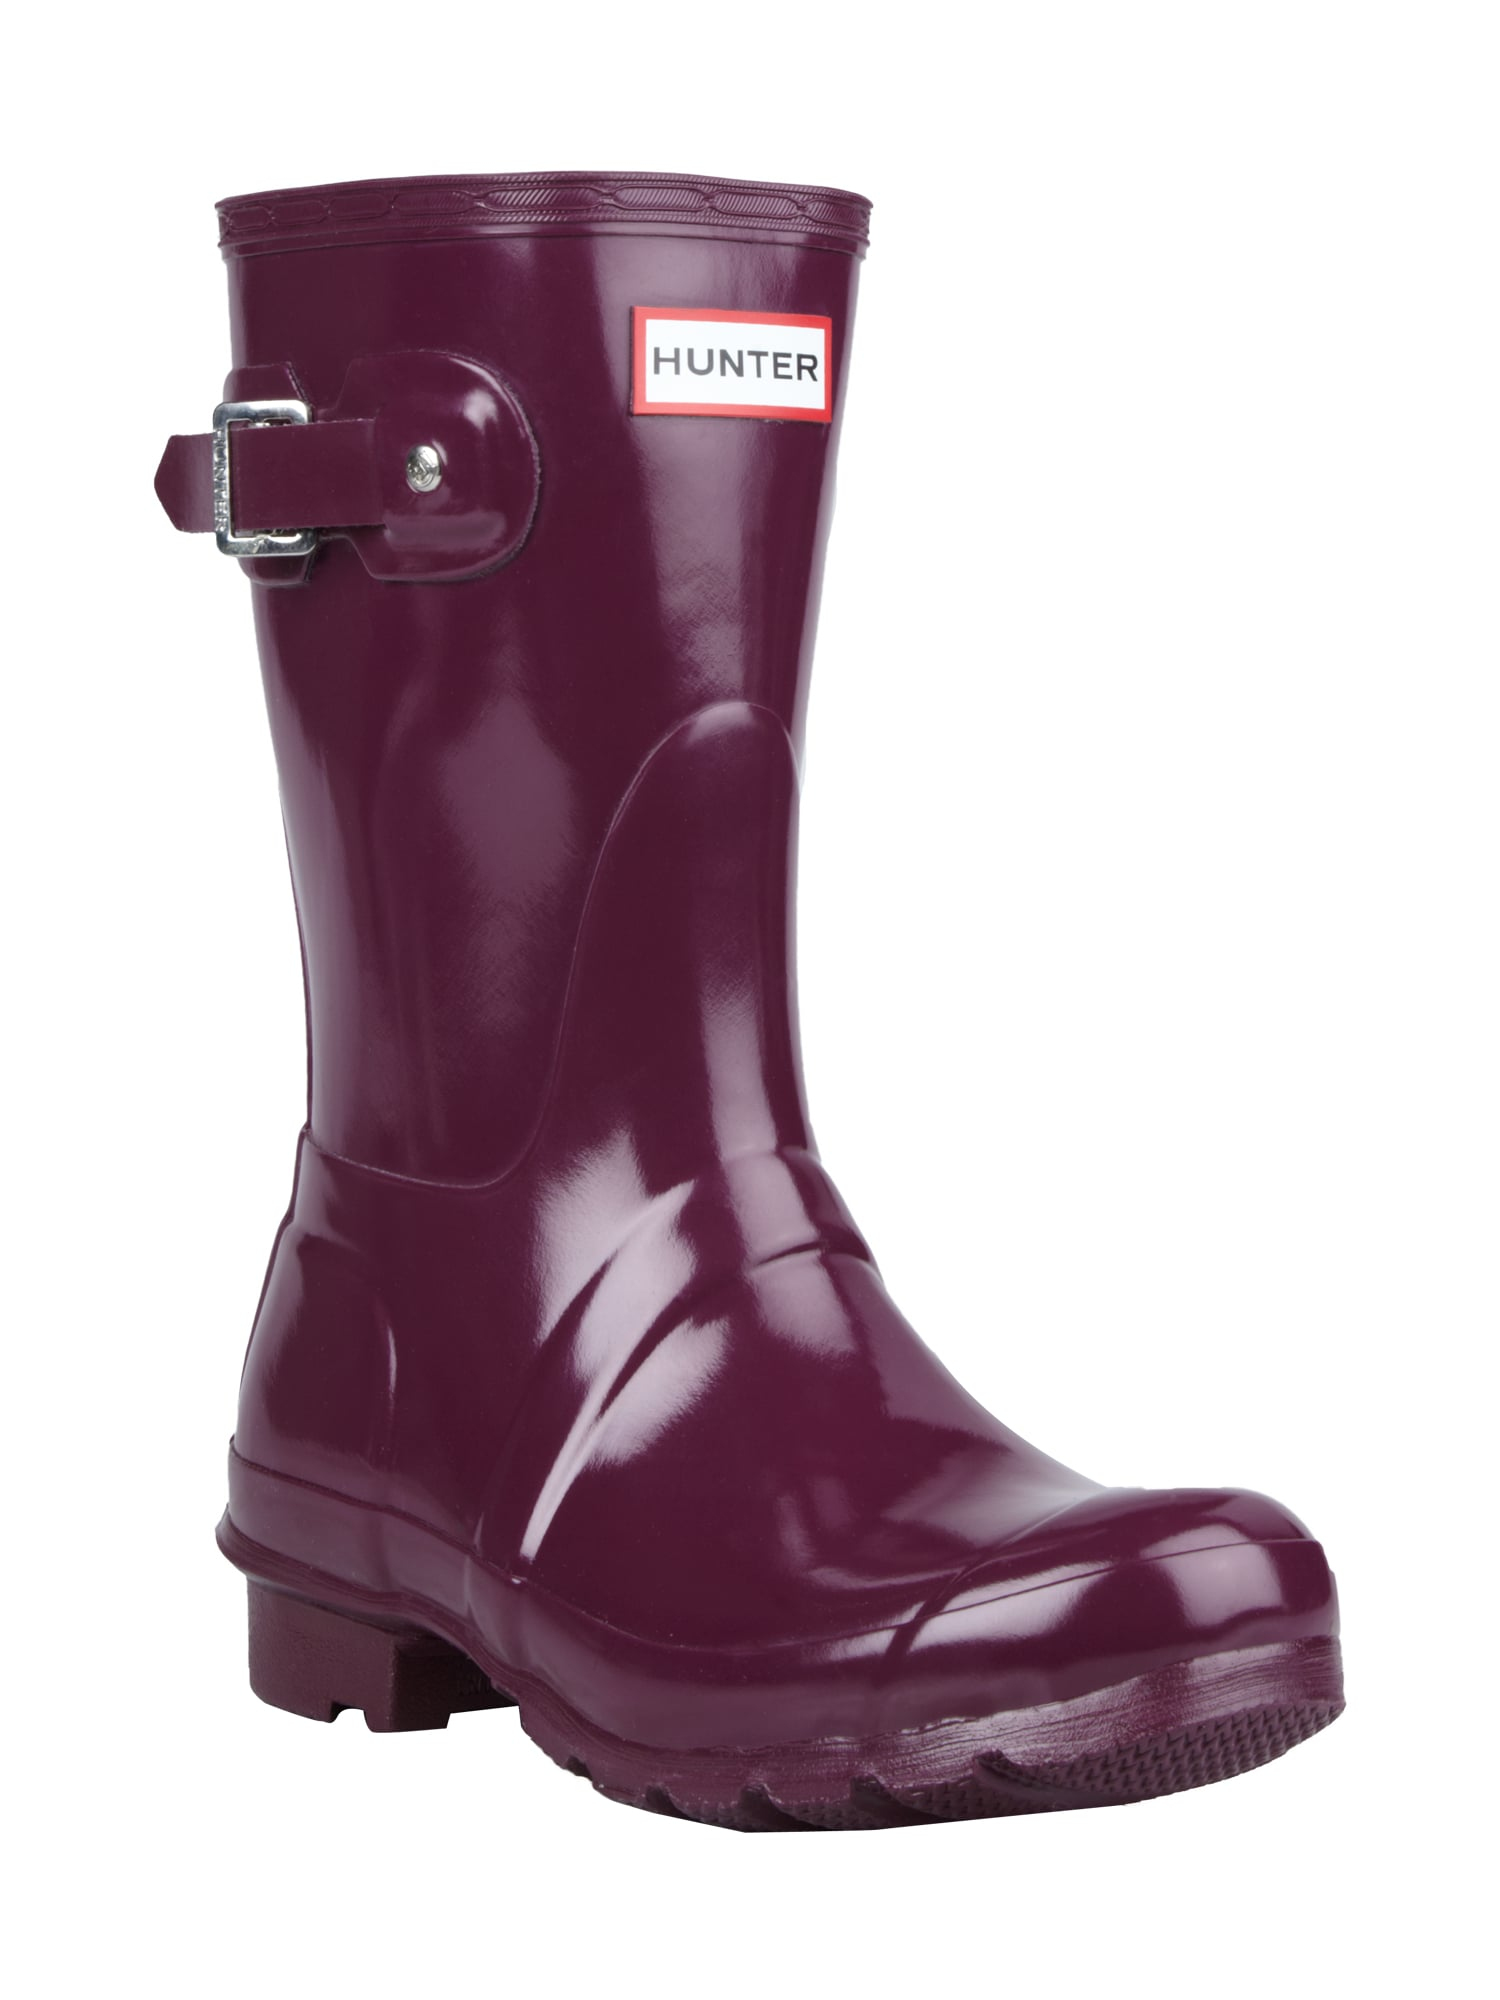 finest selection 5b223 14c92 HUNTER Gummistiefel mit dekorativer Schnalle in Rot online ...